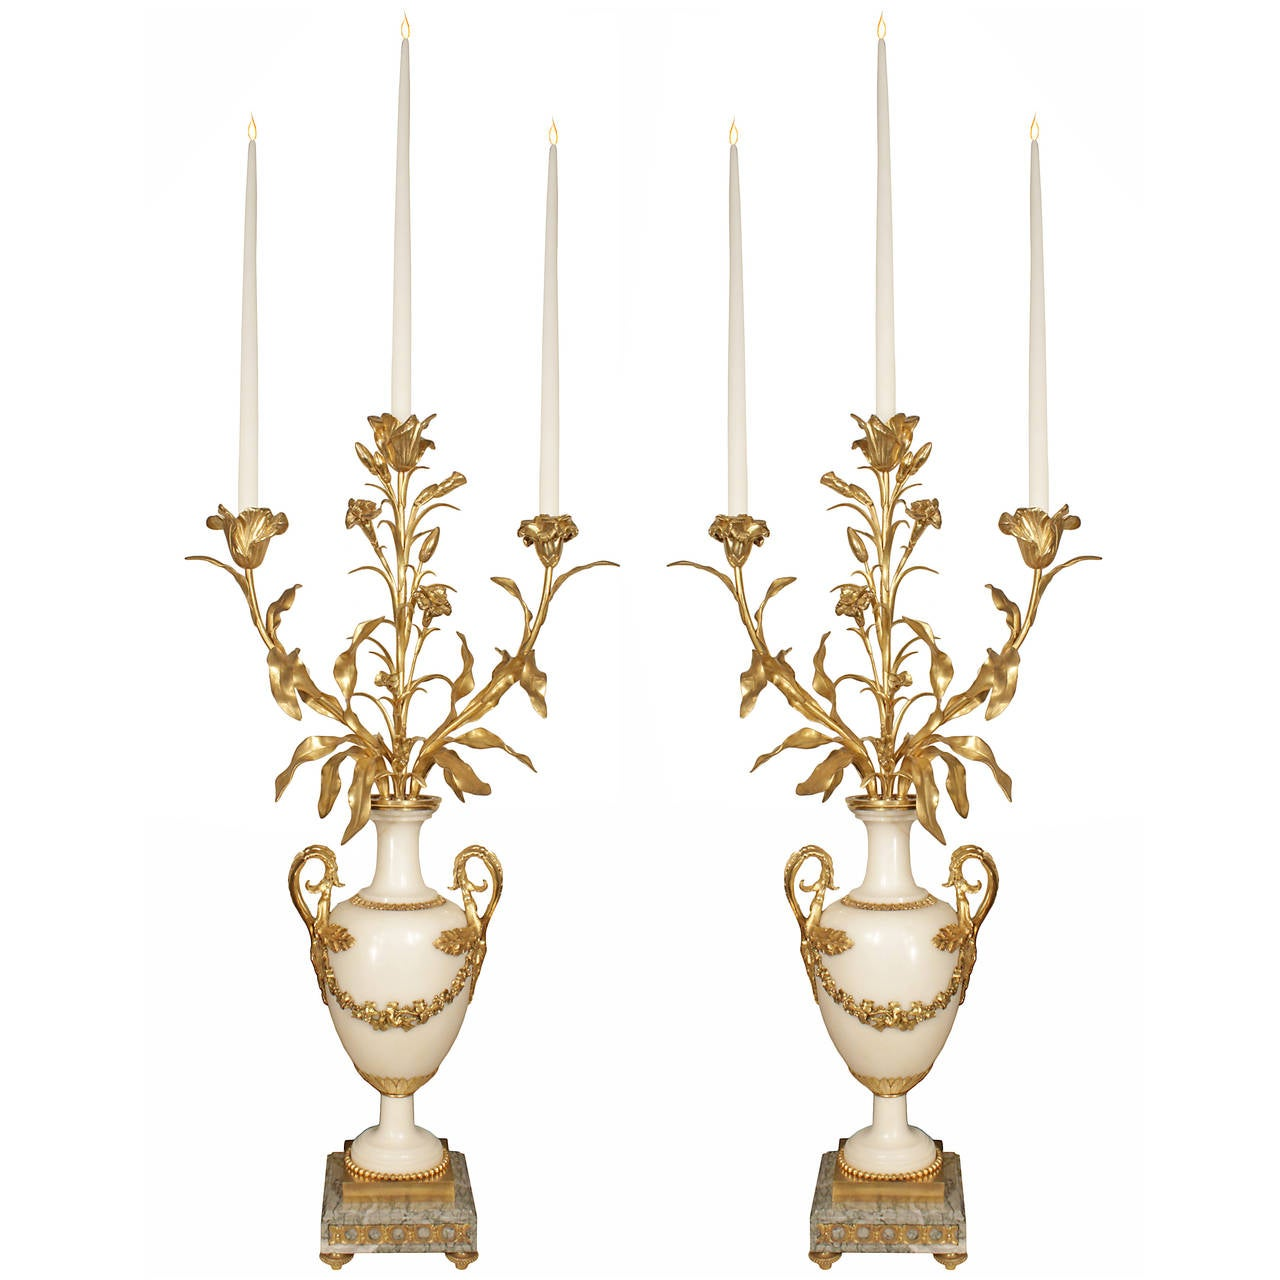 Pair of French 19th Century Louis XVI Style Marble and Ormolu Candelabras